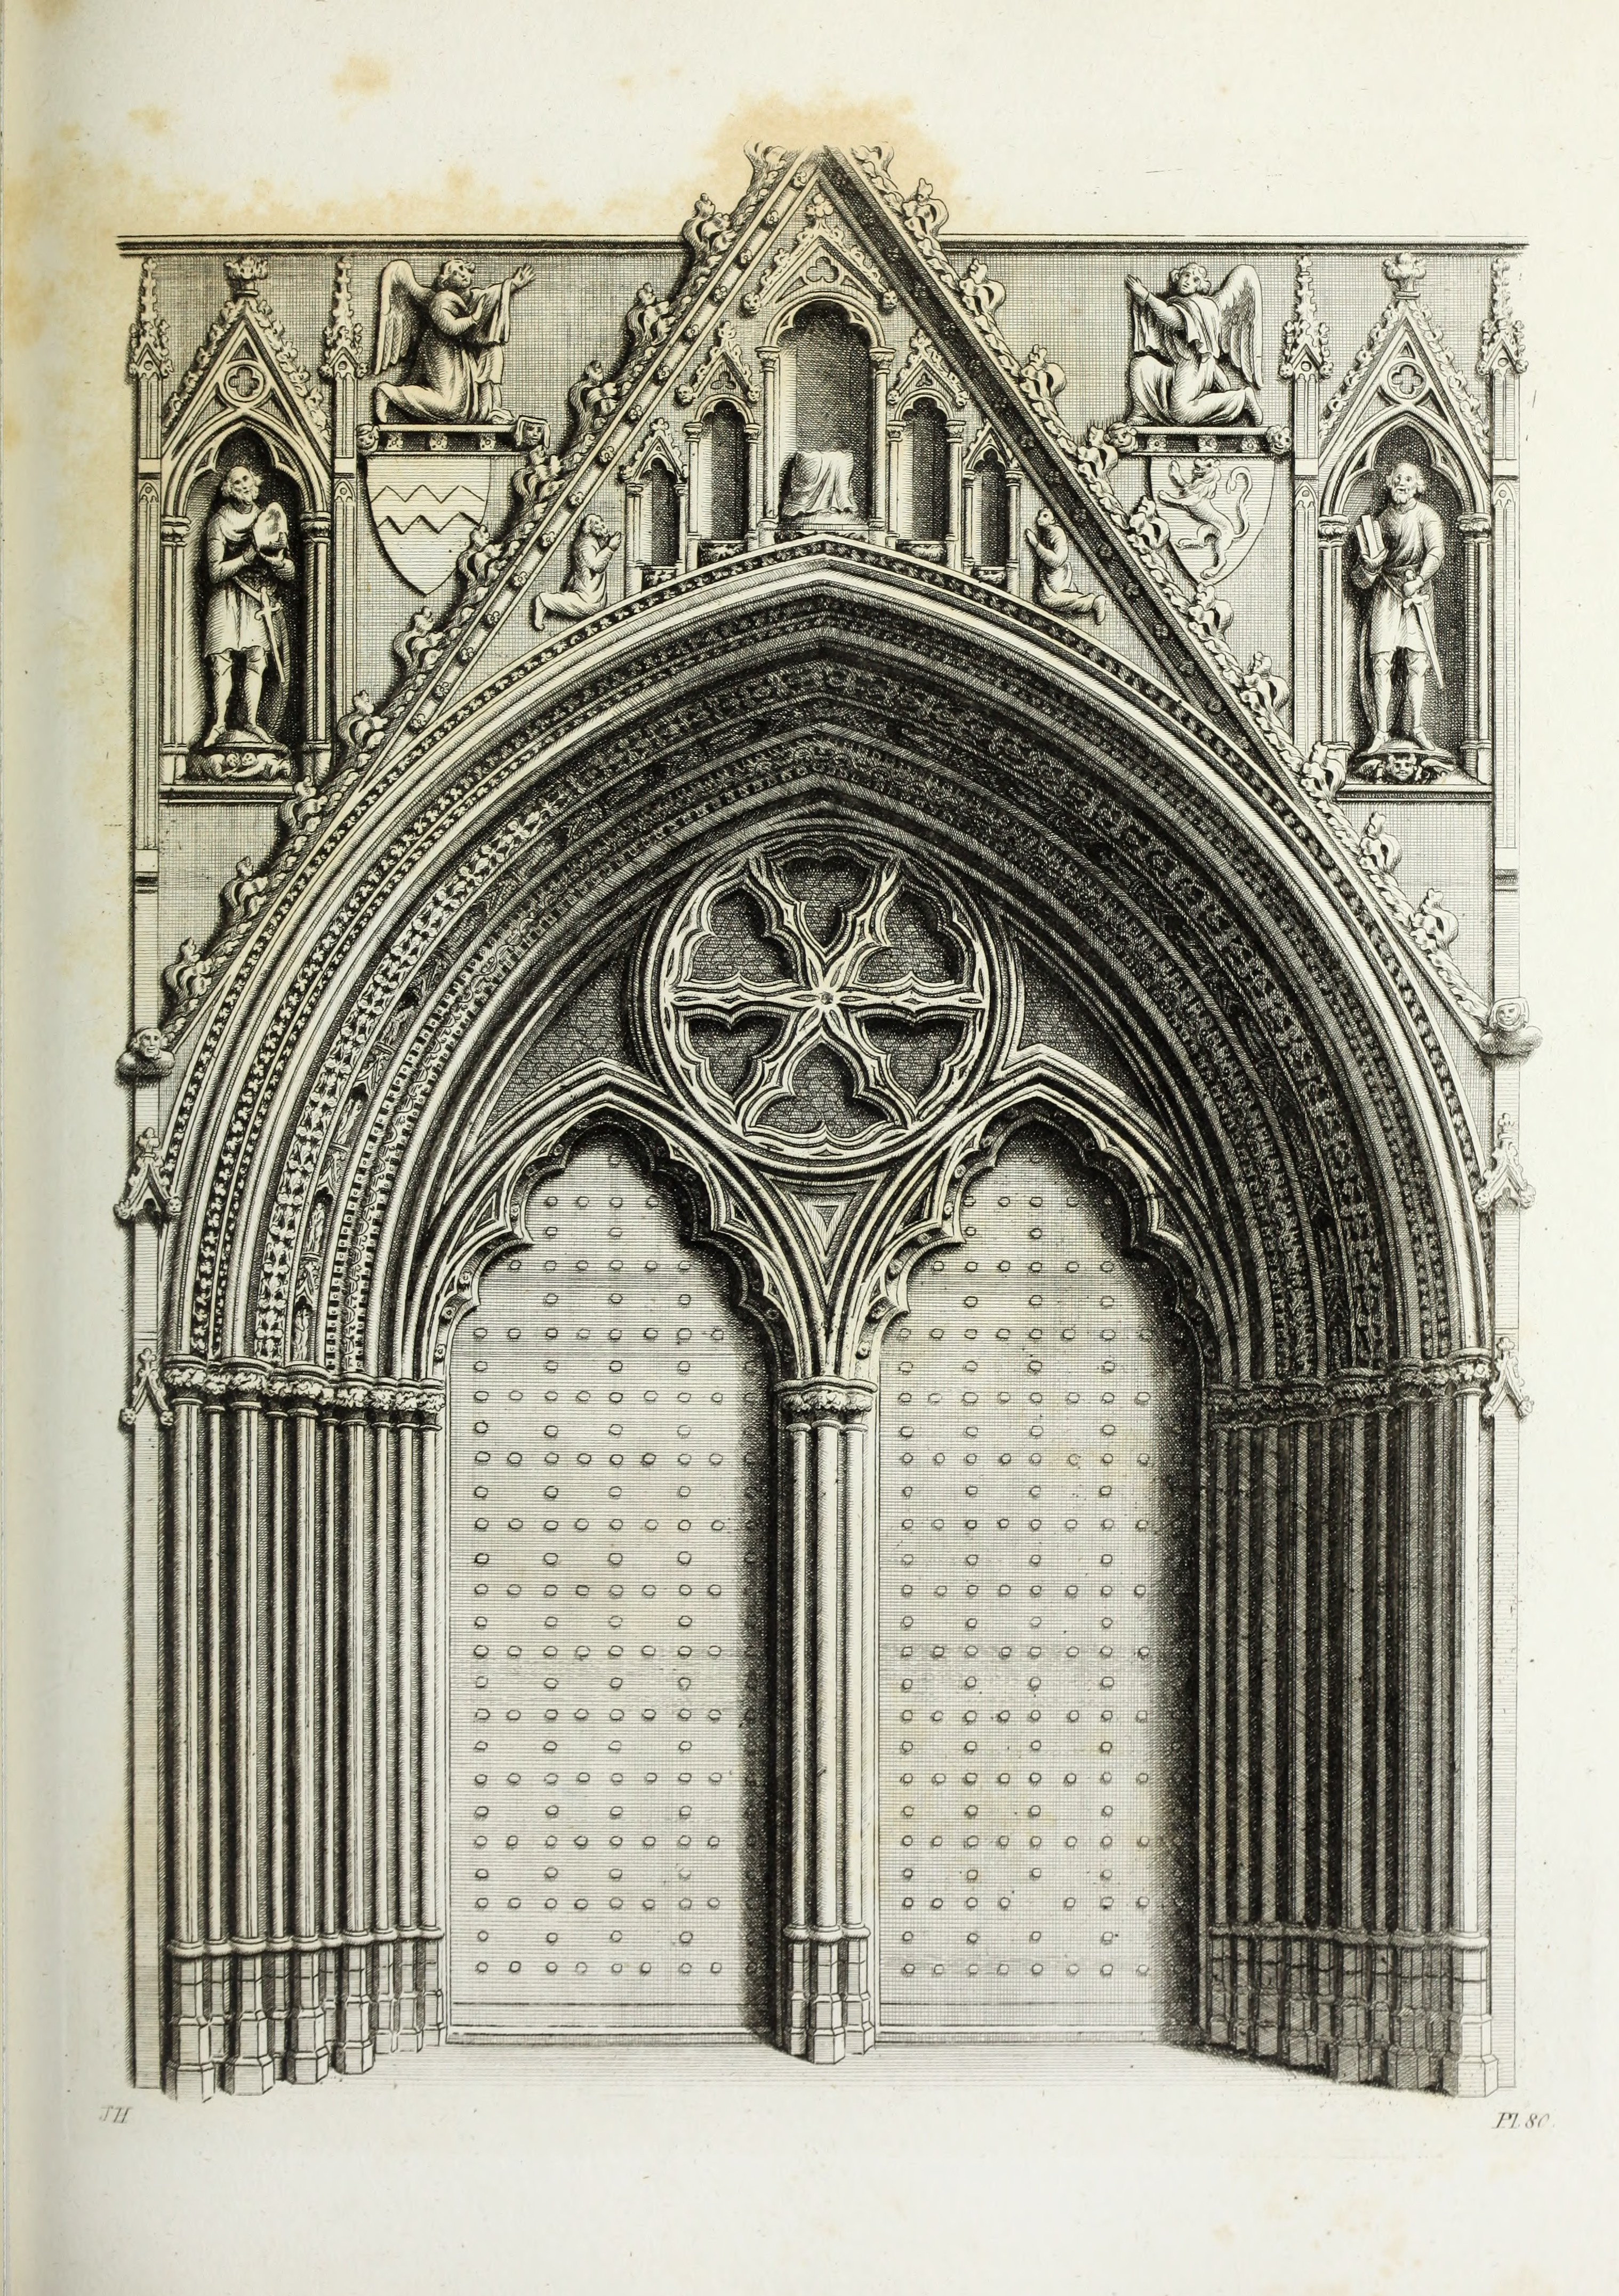 Architecture of the Medieval Cathedrals of England Essay